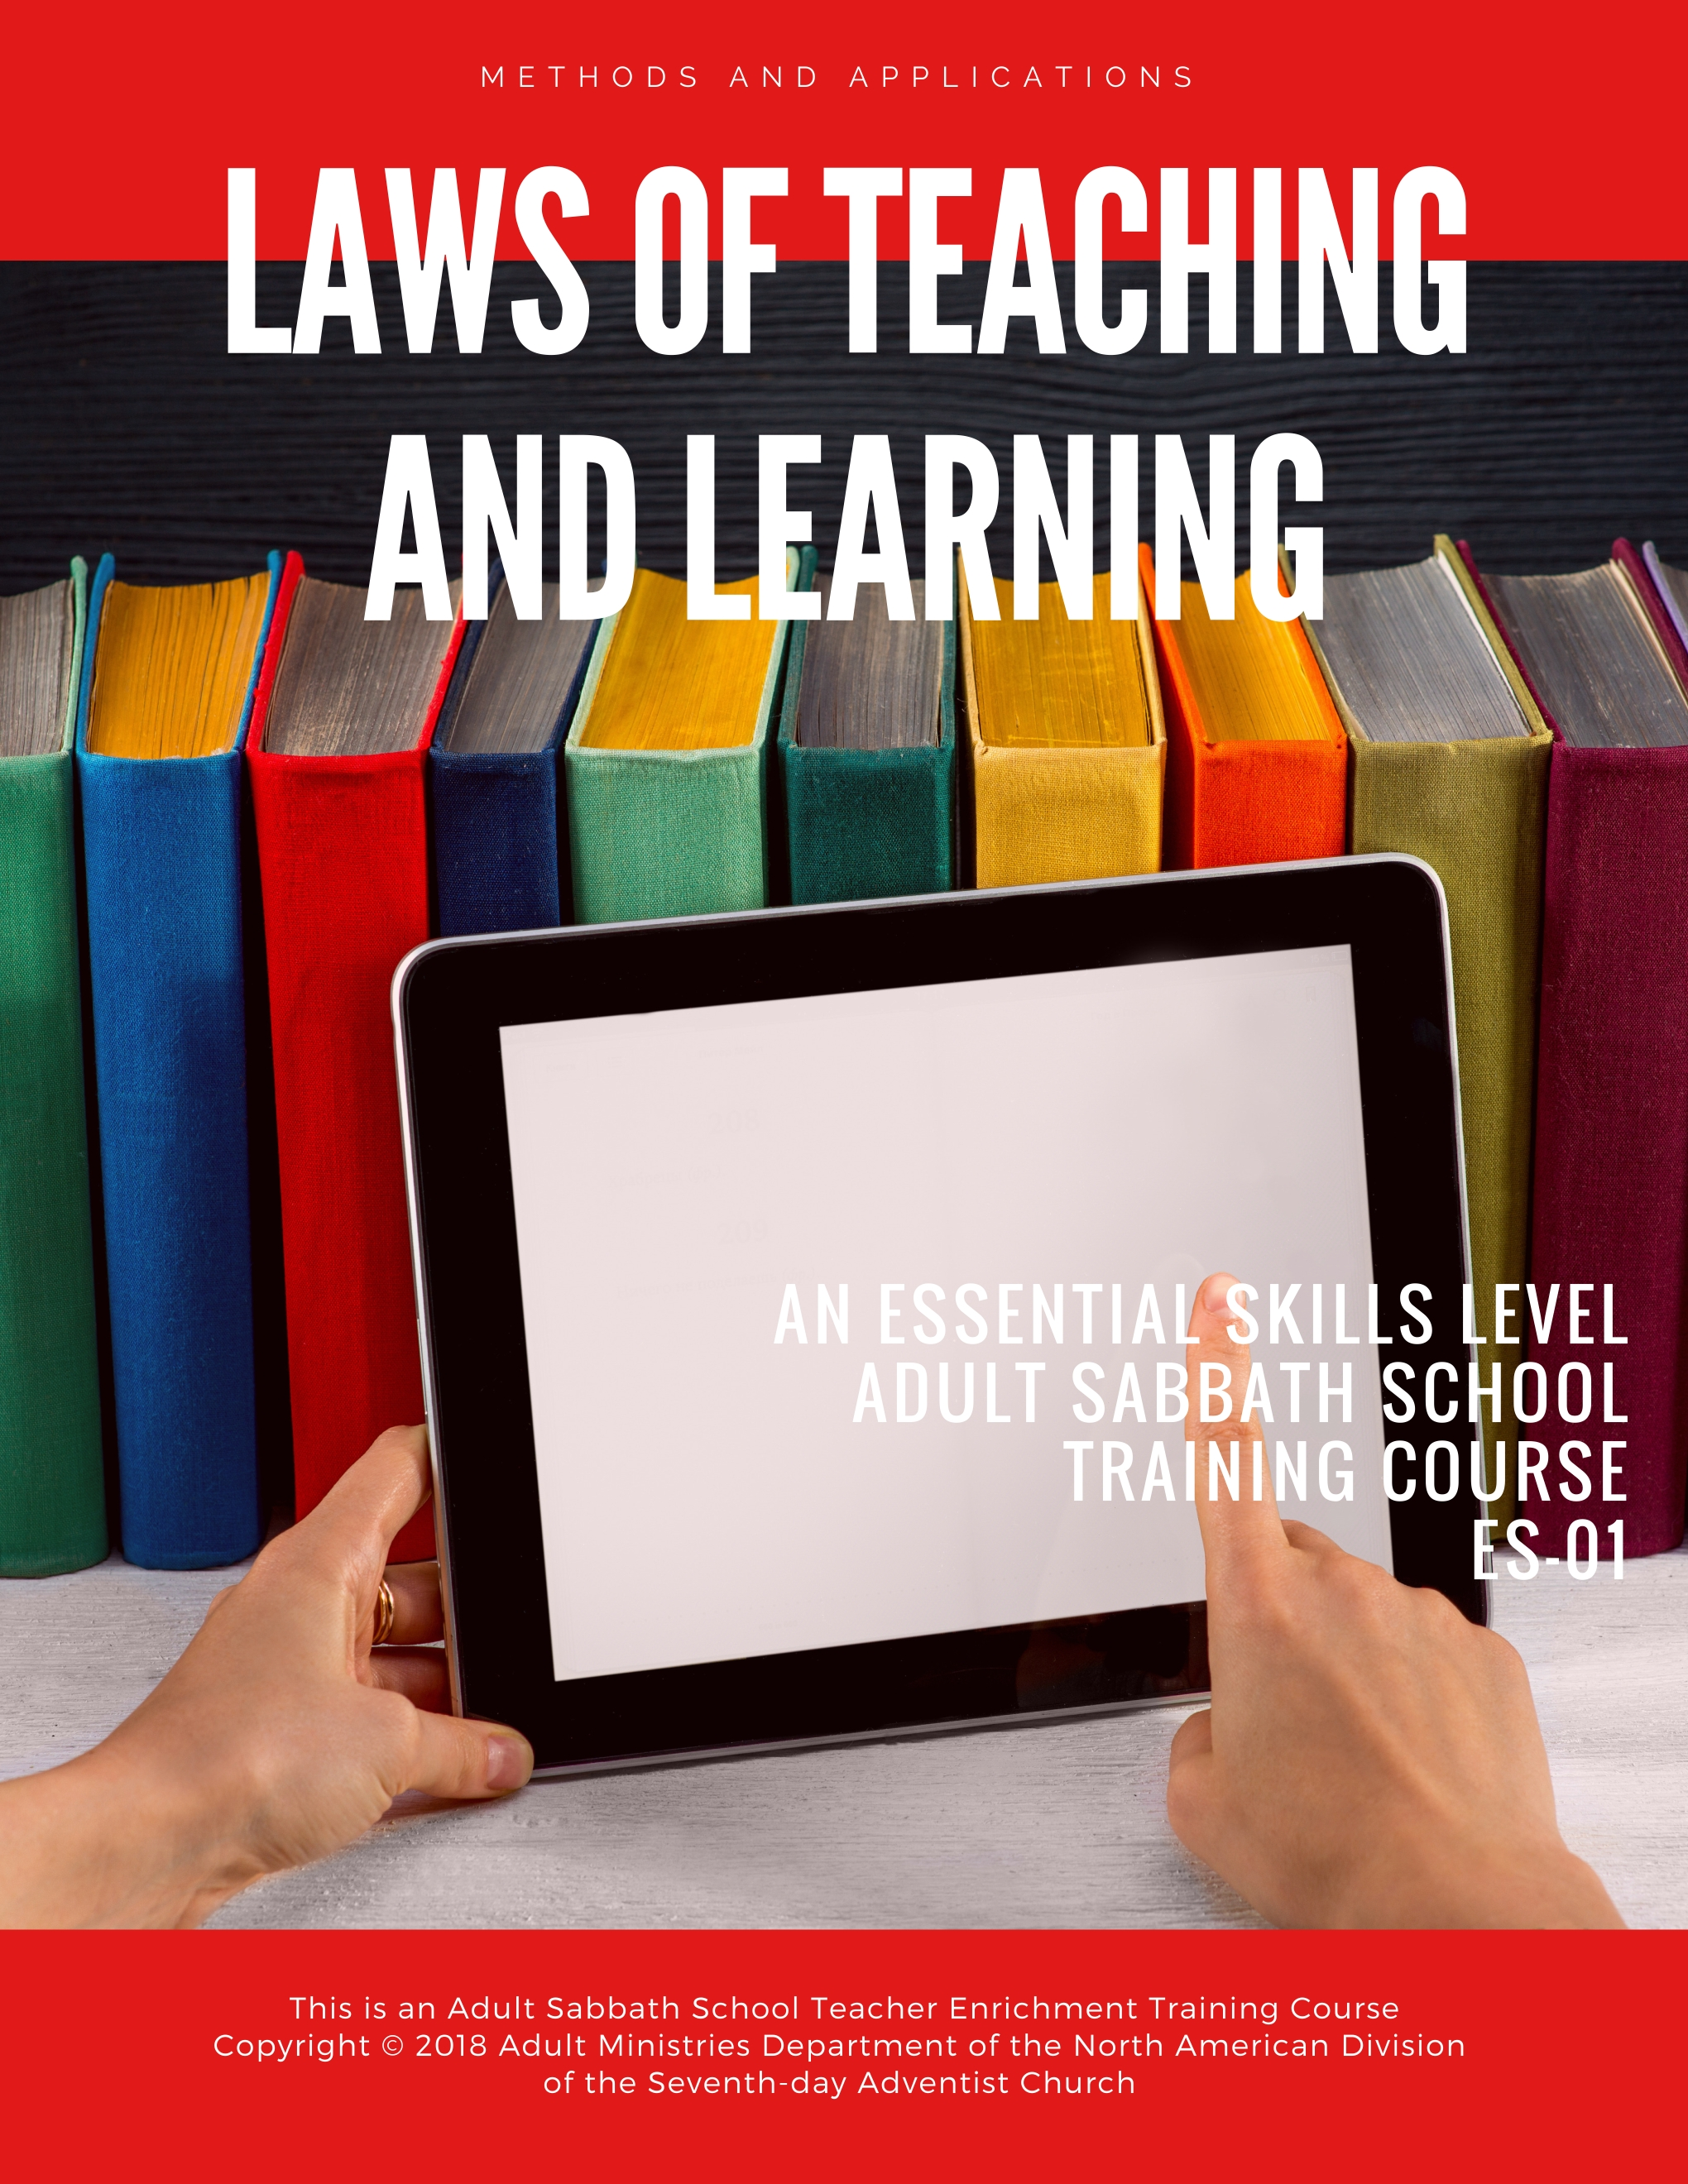 This class on Laws of Teaching and Learning is a combination of knowing and doing. Ateacher who knows his or her subject well, and follows systematic procedures in preparing the lesson, must also have the skills and knowledge about how to present the lessoneffectively. - <<<CLICK COVER TO VIEW